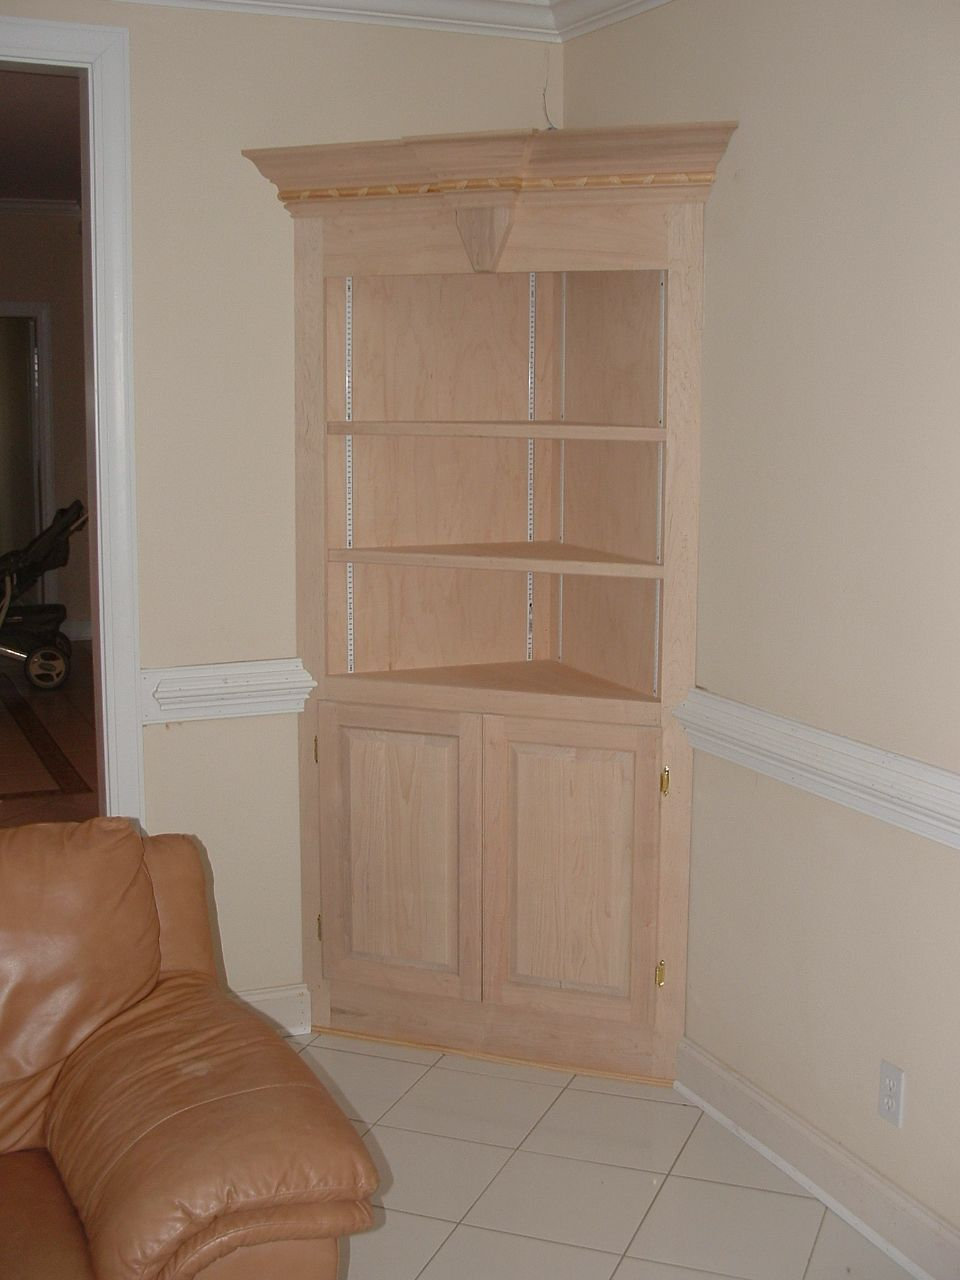 Using kitchen cabinets in the bathroom for storage for Corner kitchen cabinet